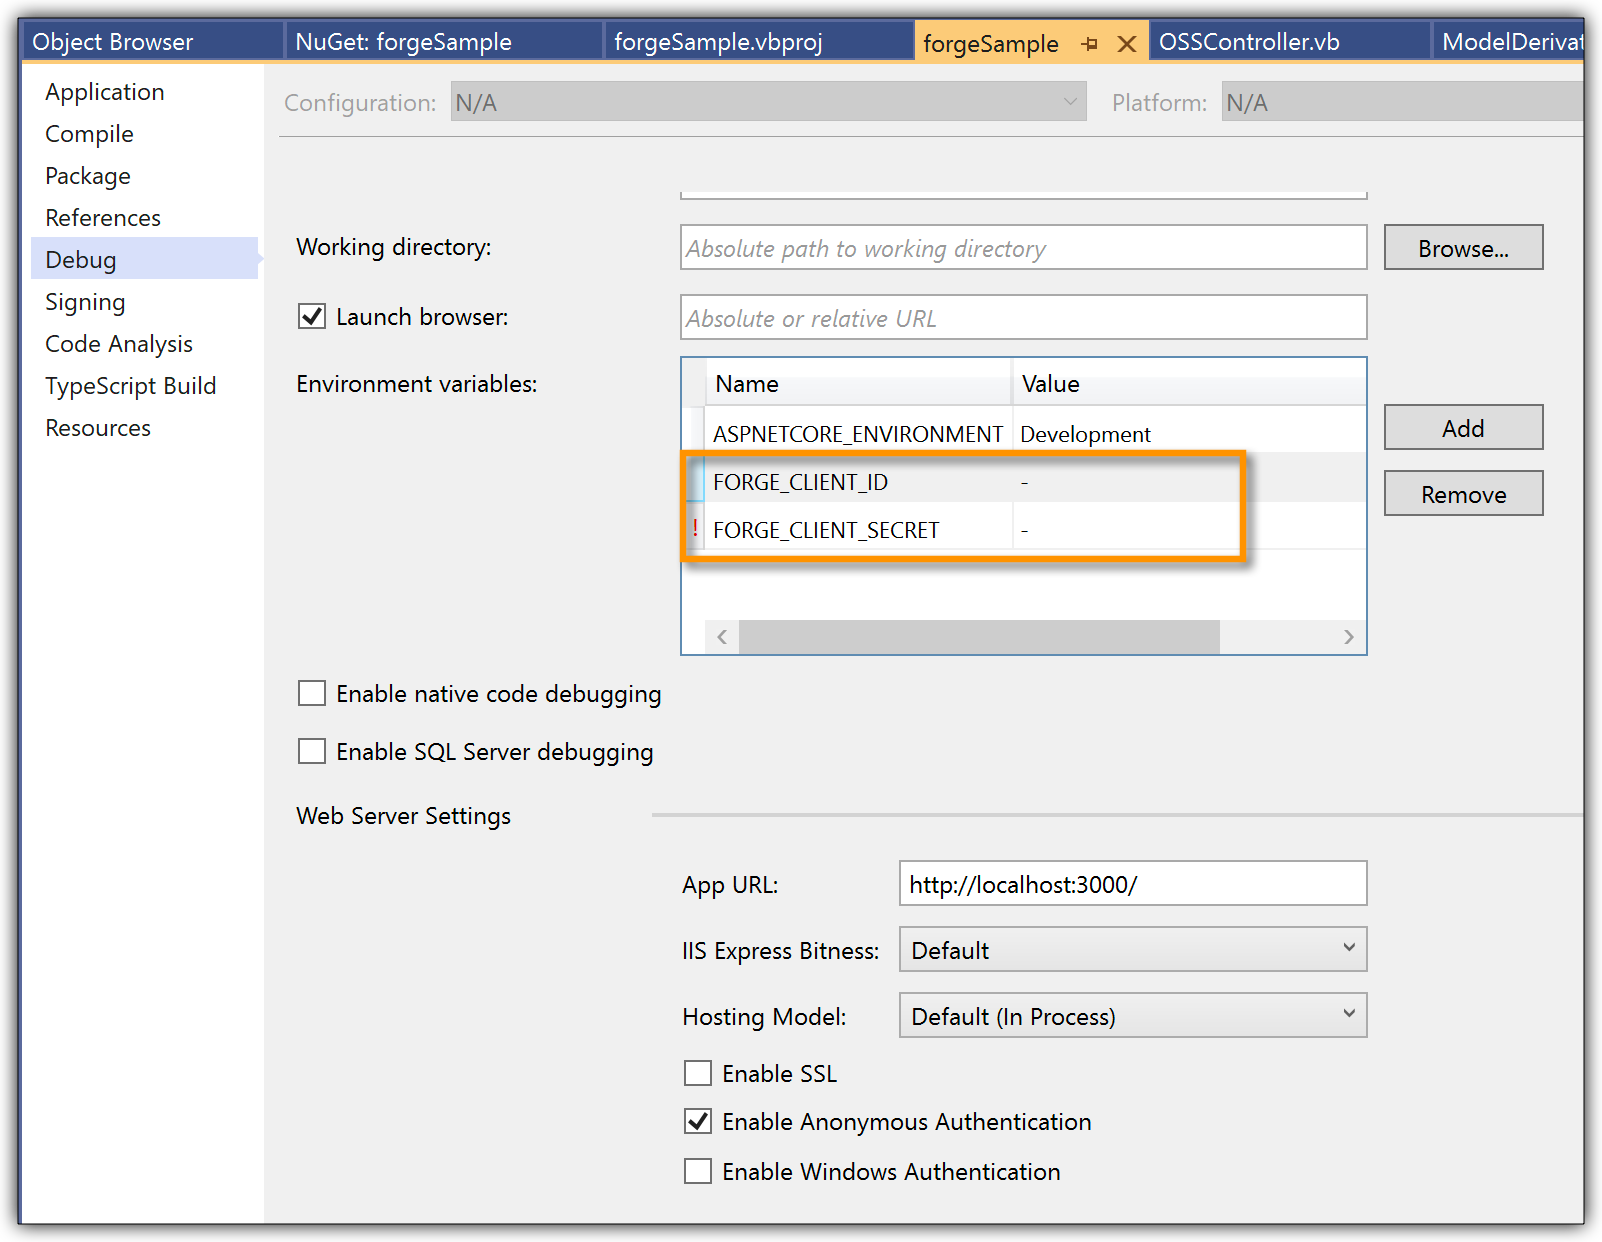 Add credentials in project settings